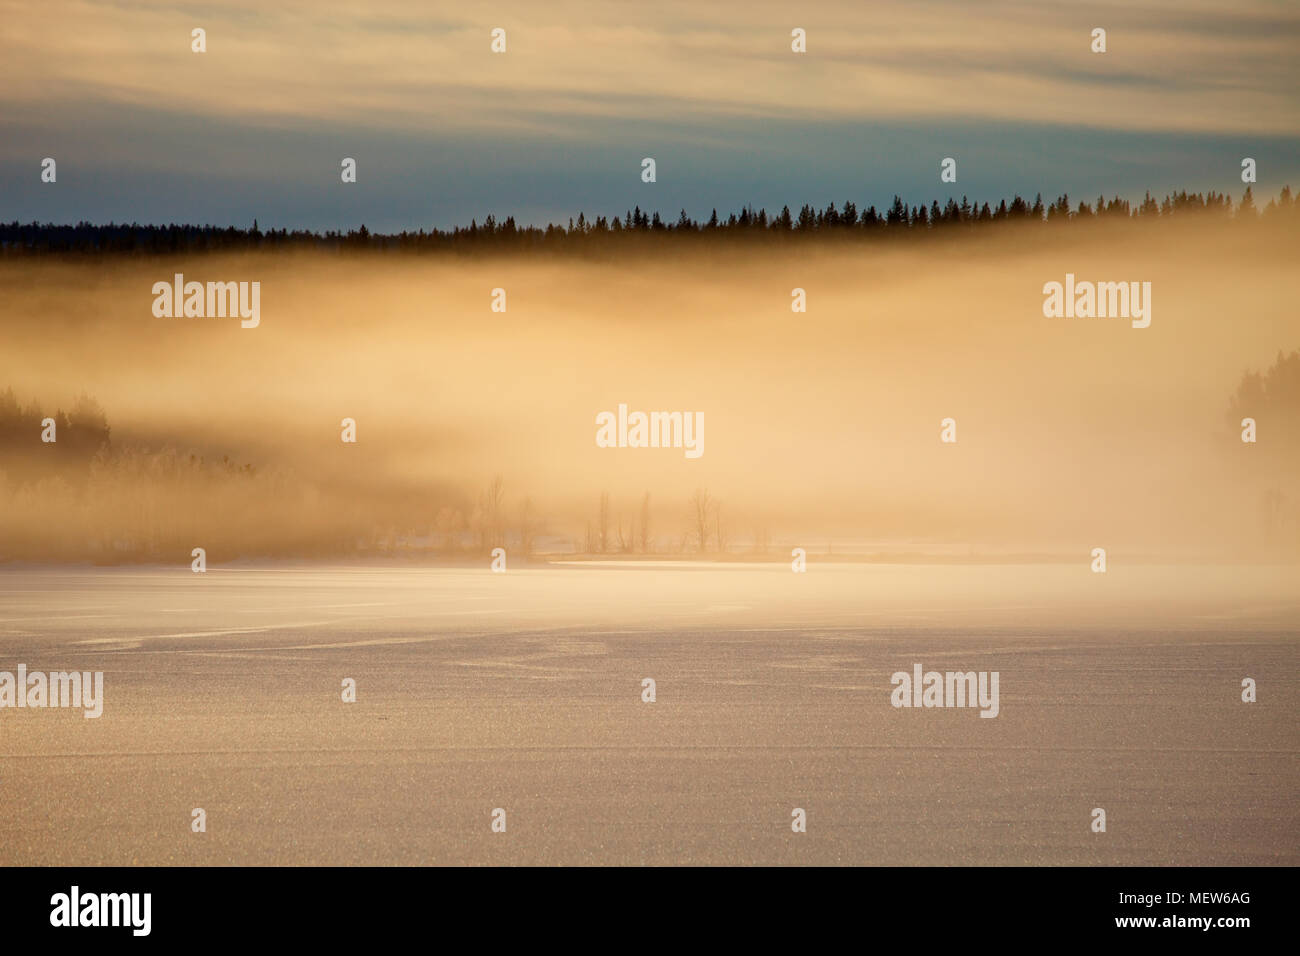 Vapors rising from a frozen lake are illuminated by the setting sun. - Stock Image